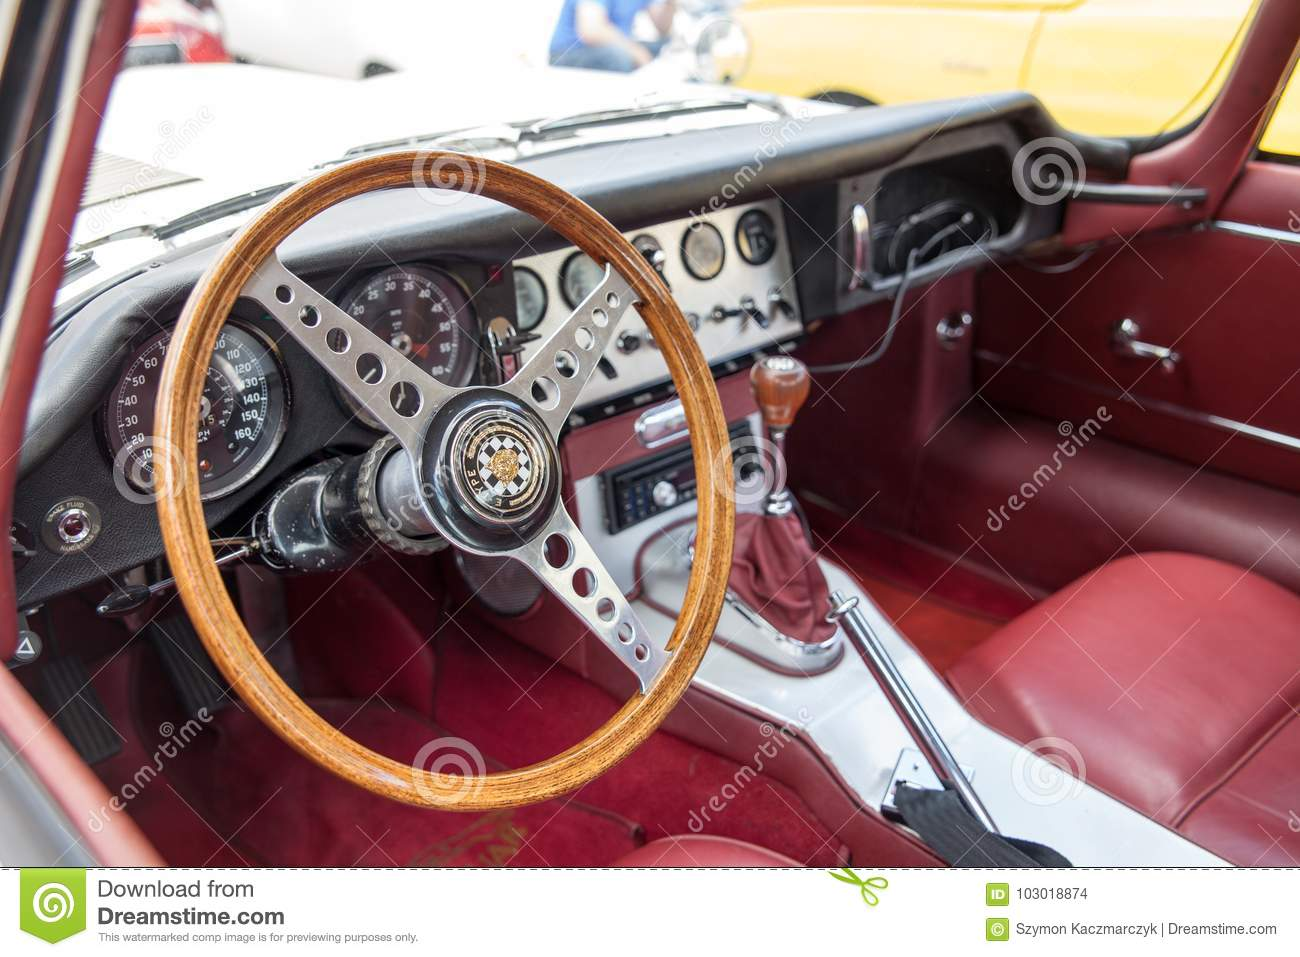 Exhibition Of Old Cars Interior Of An Old Car The Old Model Jaguar